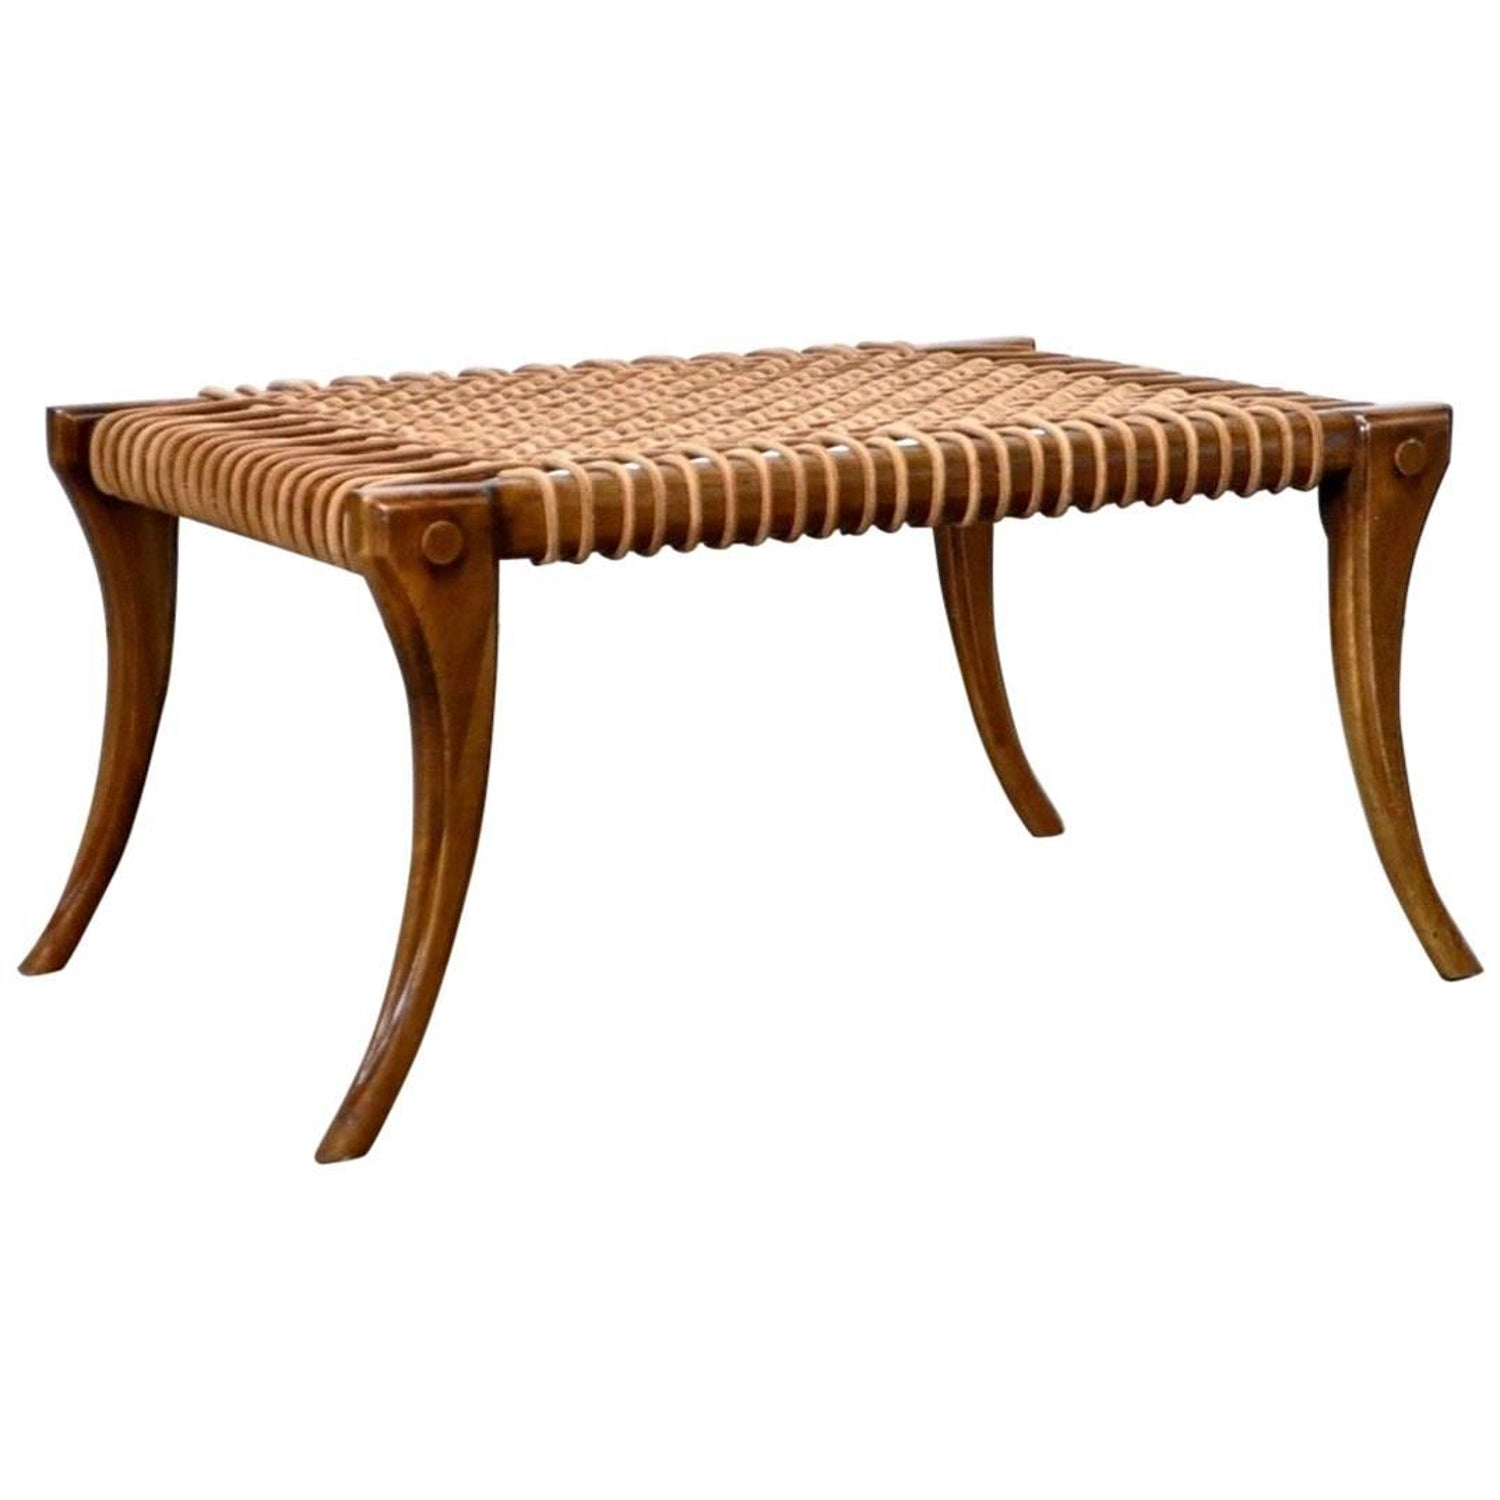 Klismos Bench or Coffee Table with Rope Seat circa 1960s For Sale